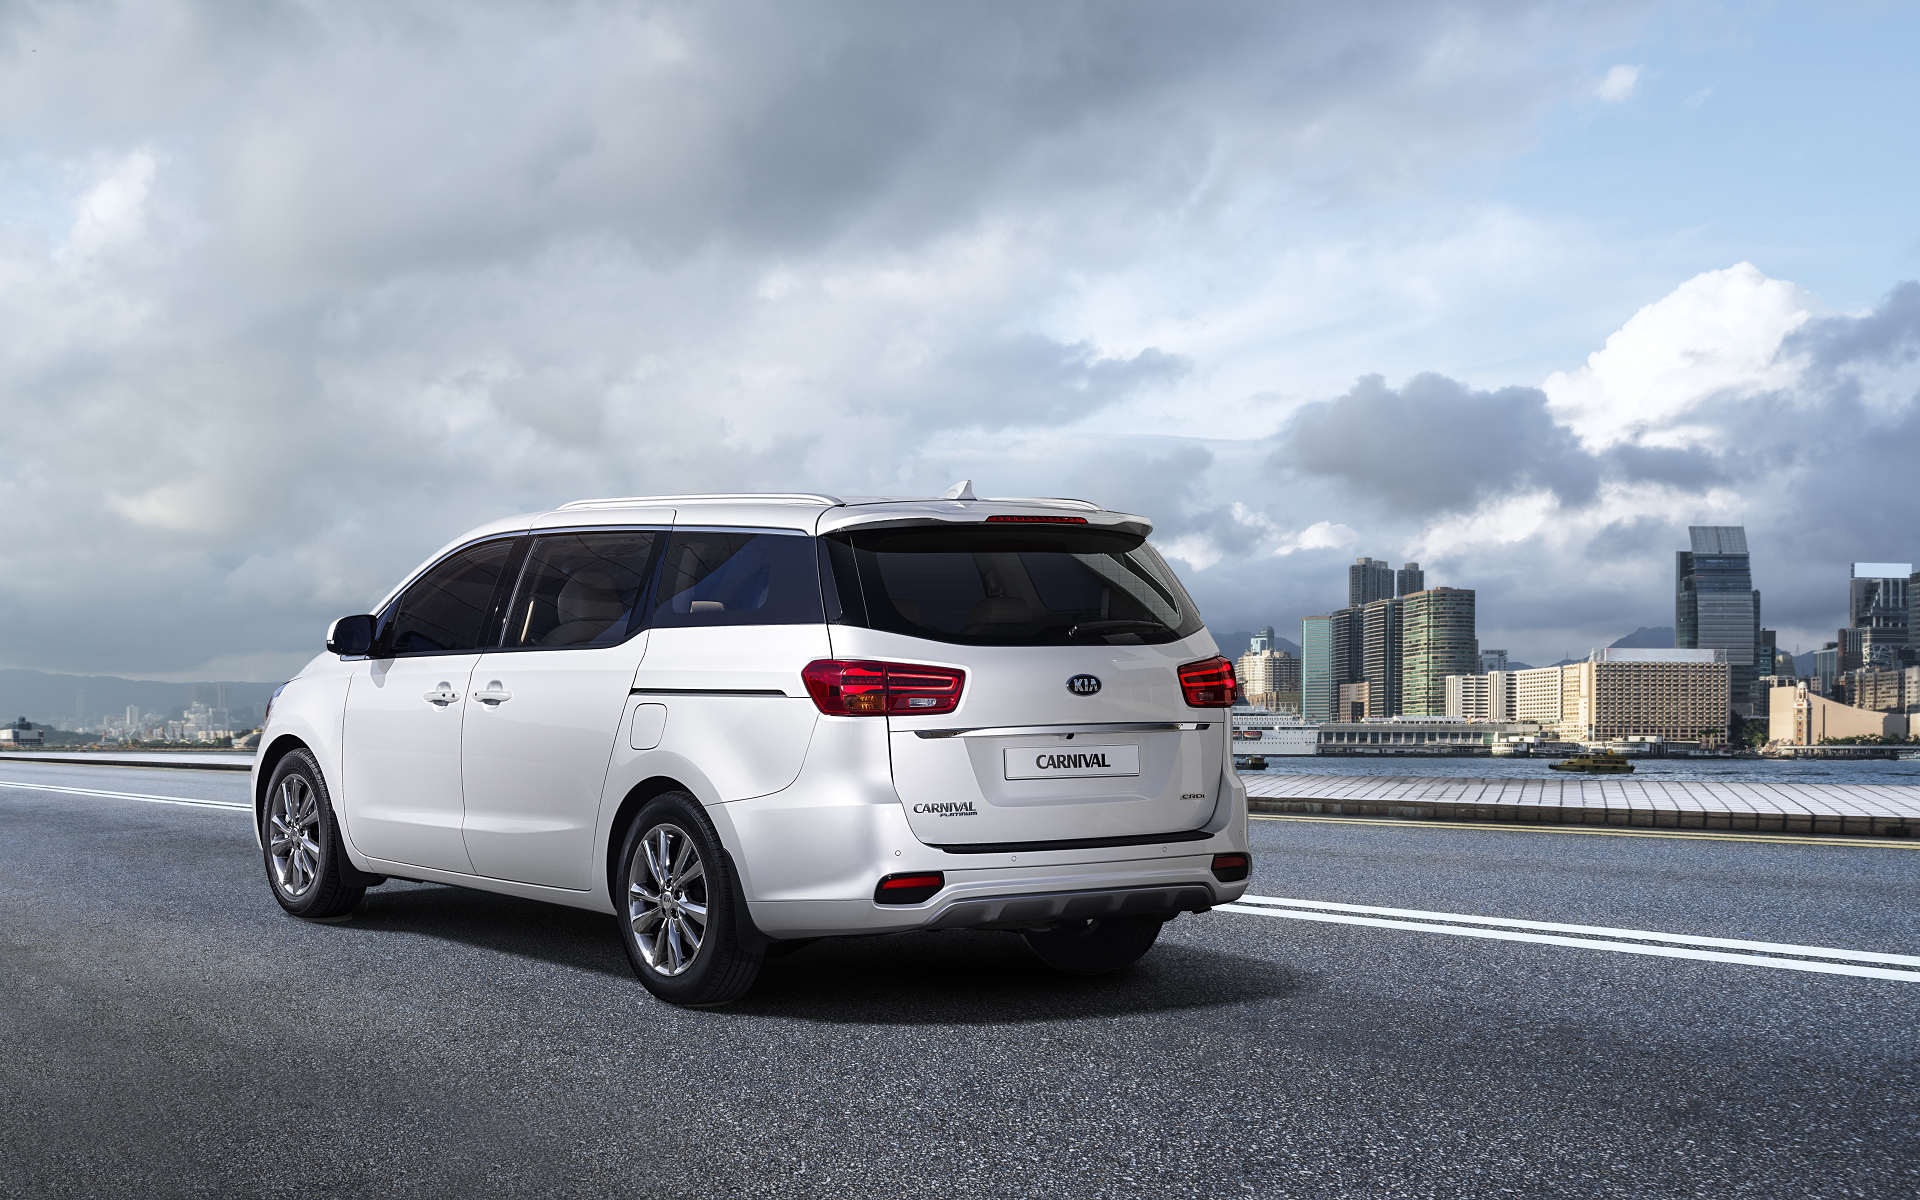 Kia Carnival Mpv To Be Positioned Above Toyota Innova